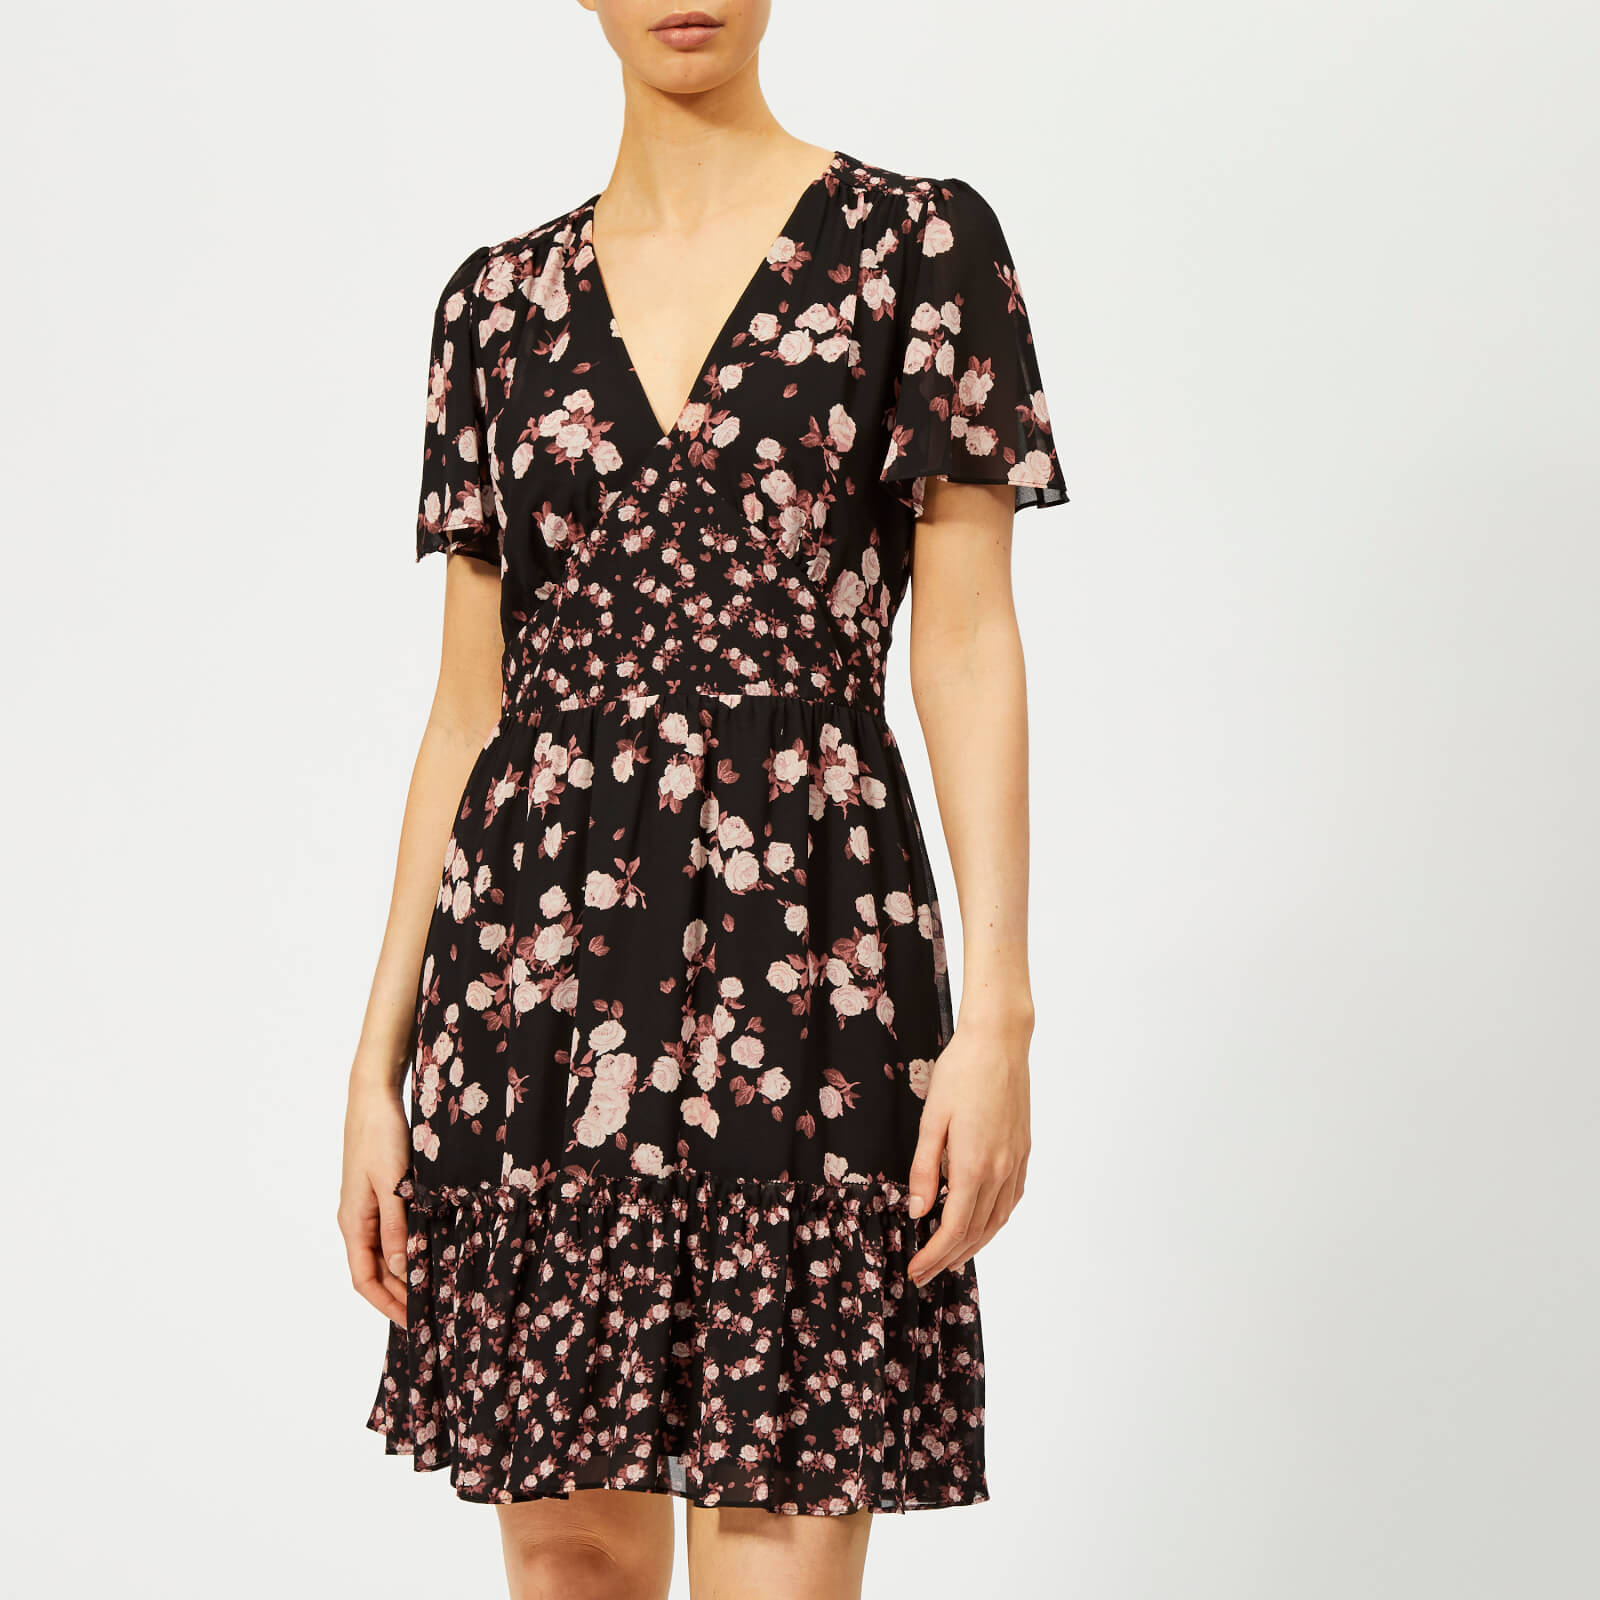 f4acd7db9b8 MICHAEL MICHAEL KORS Women s Rose Print Mix Dress - Black Dusty Rose Womens  Clothing